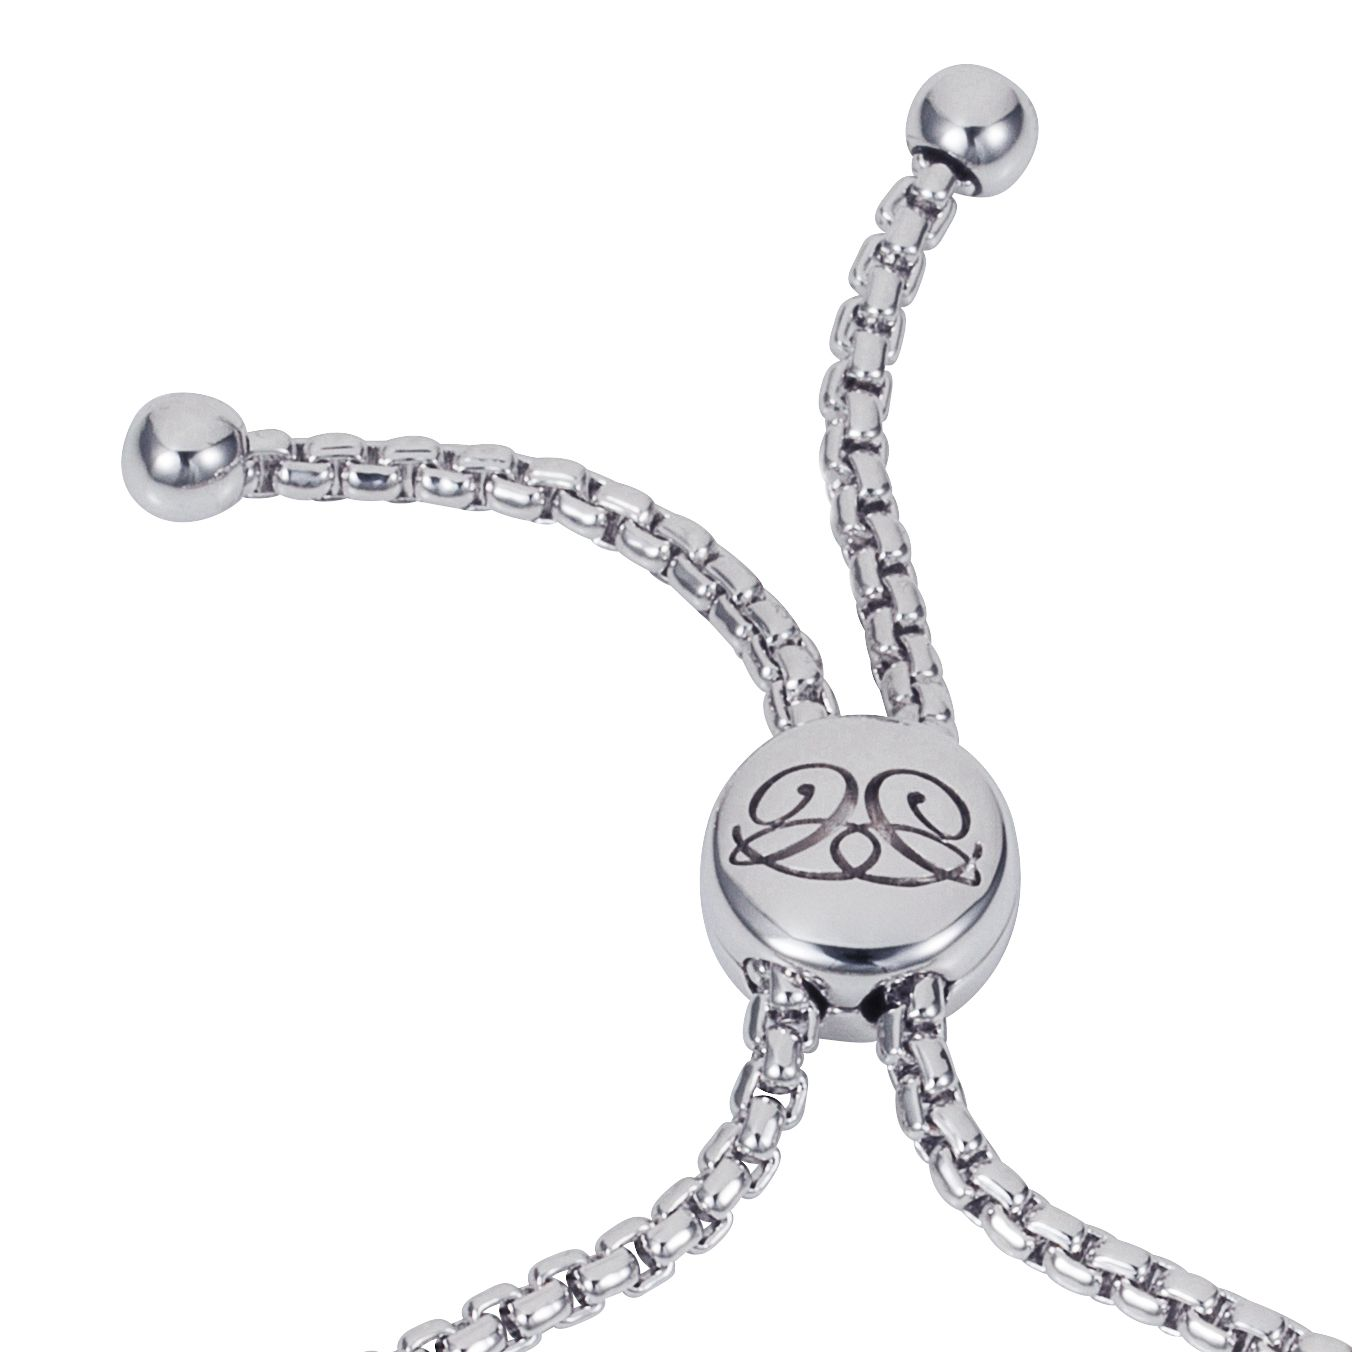 Rhodium plated titania friendship bracelet